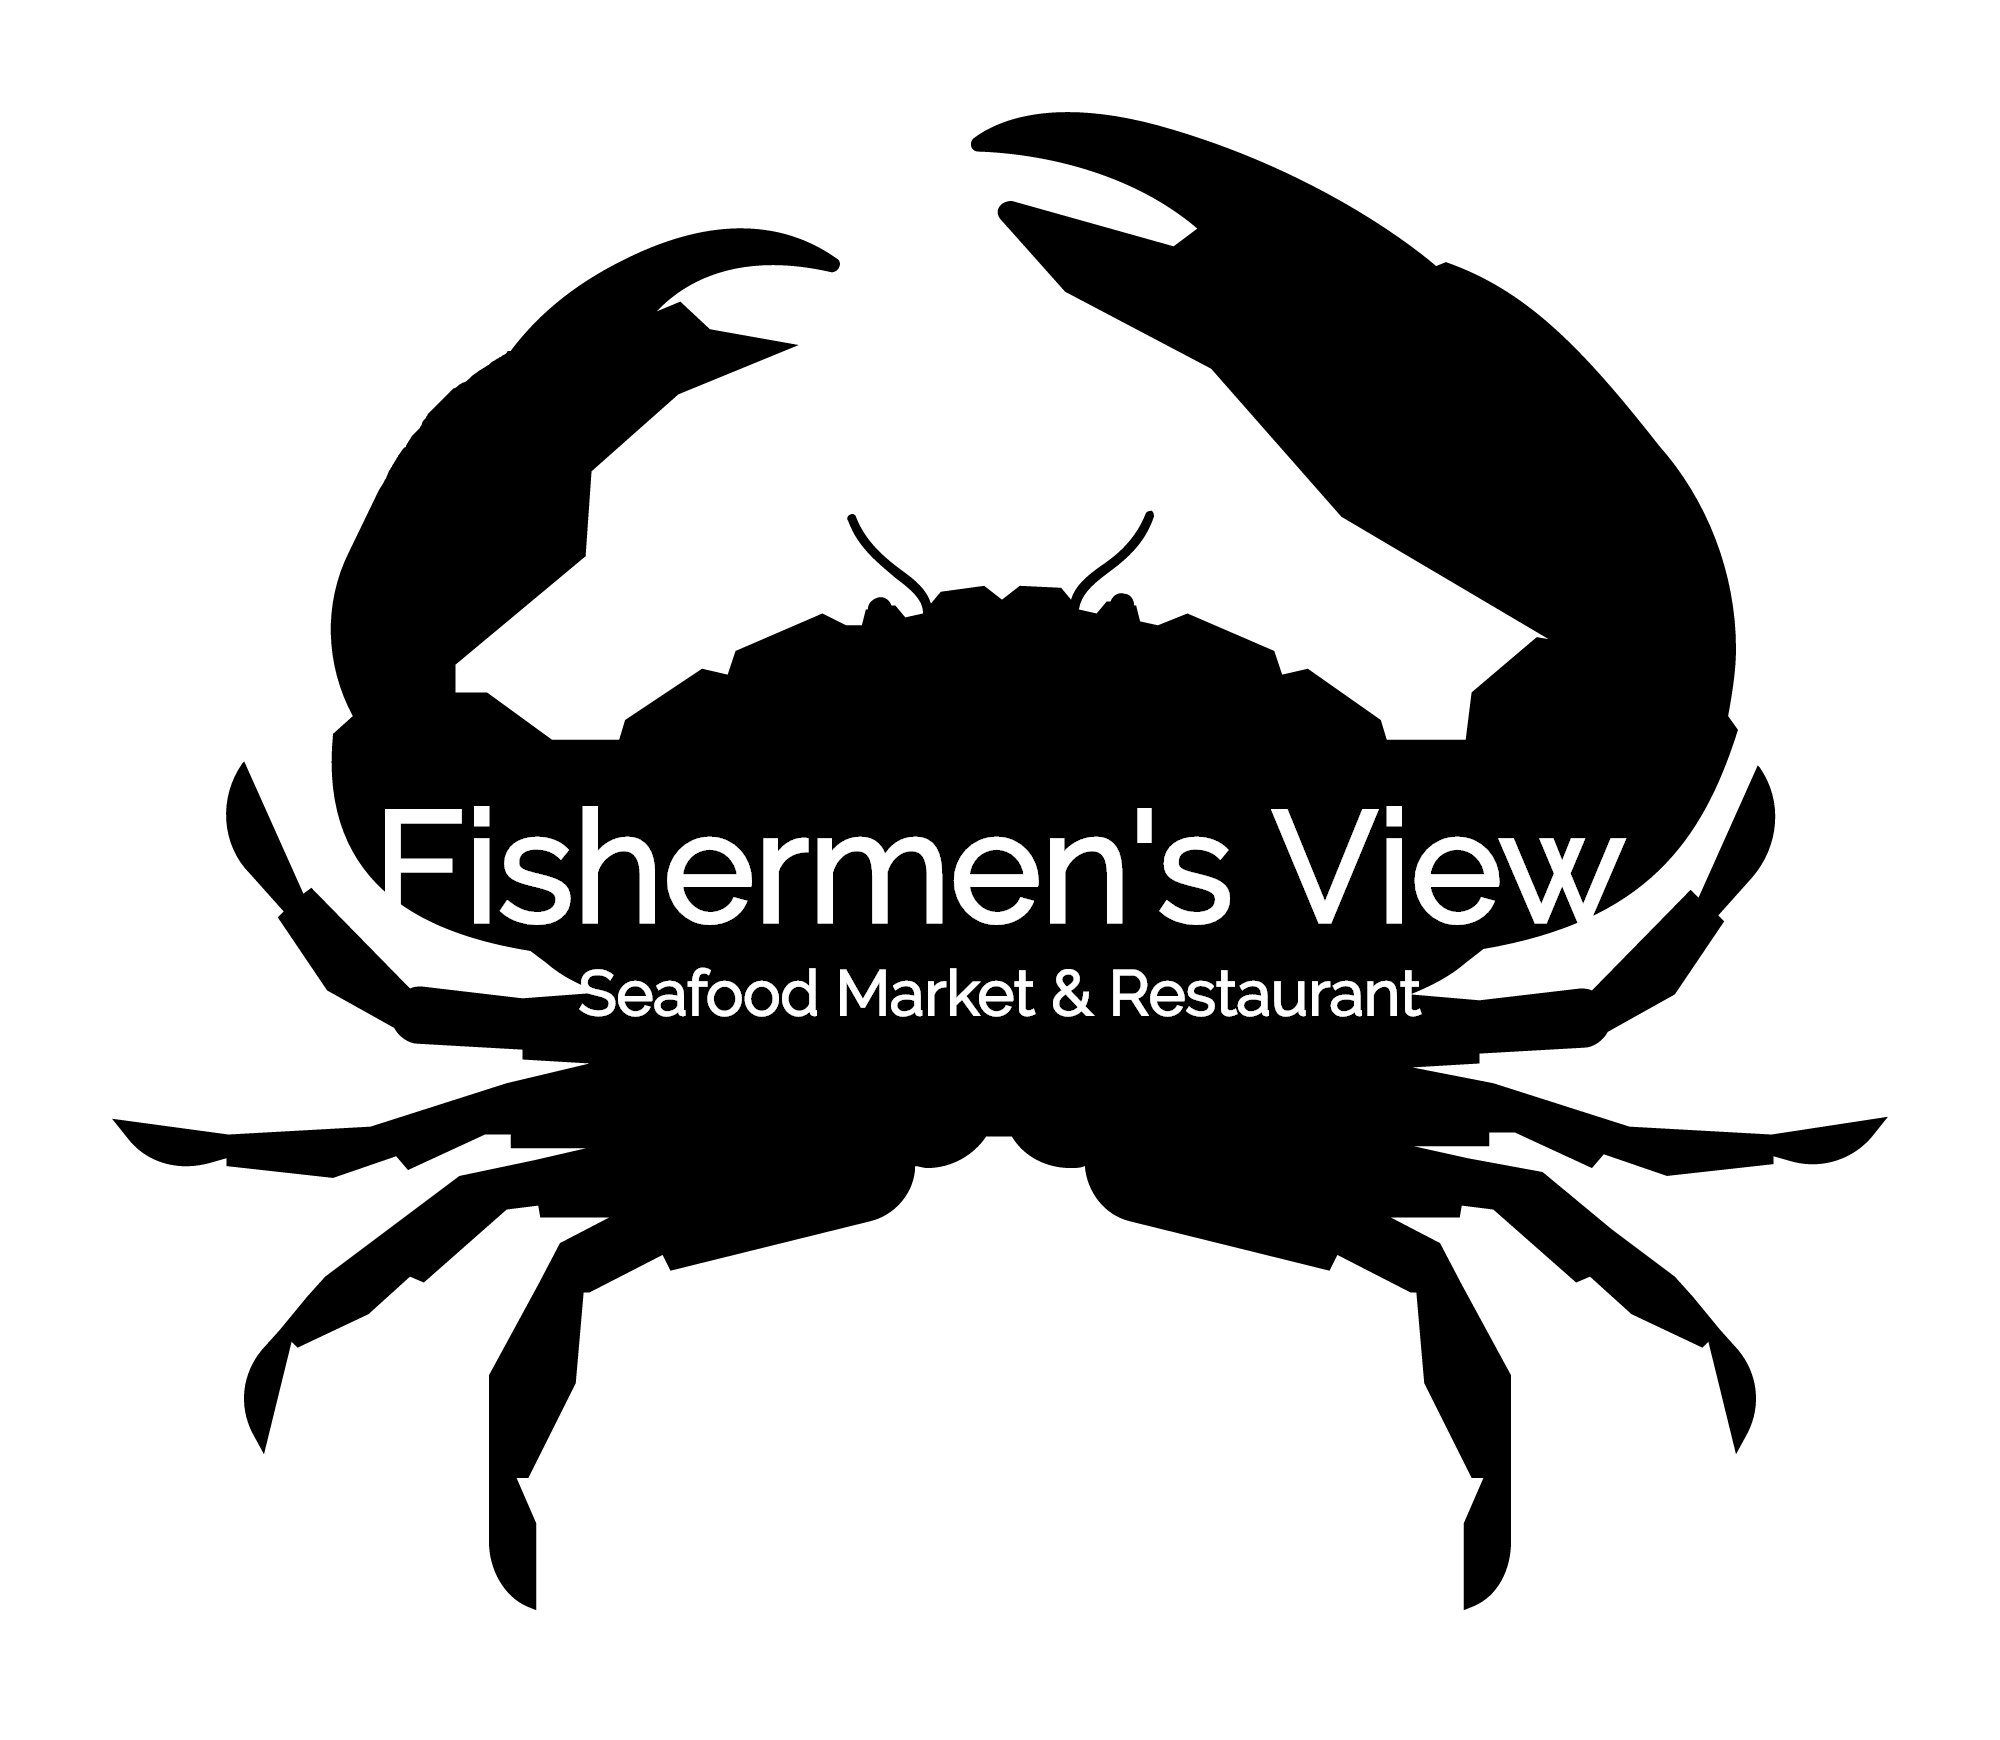 Fishermen's View-logo-black.png